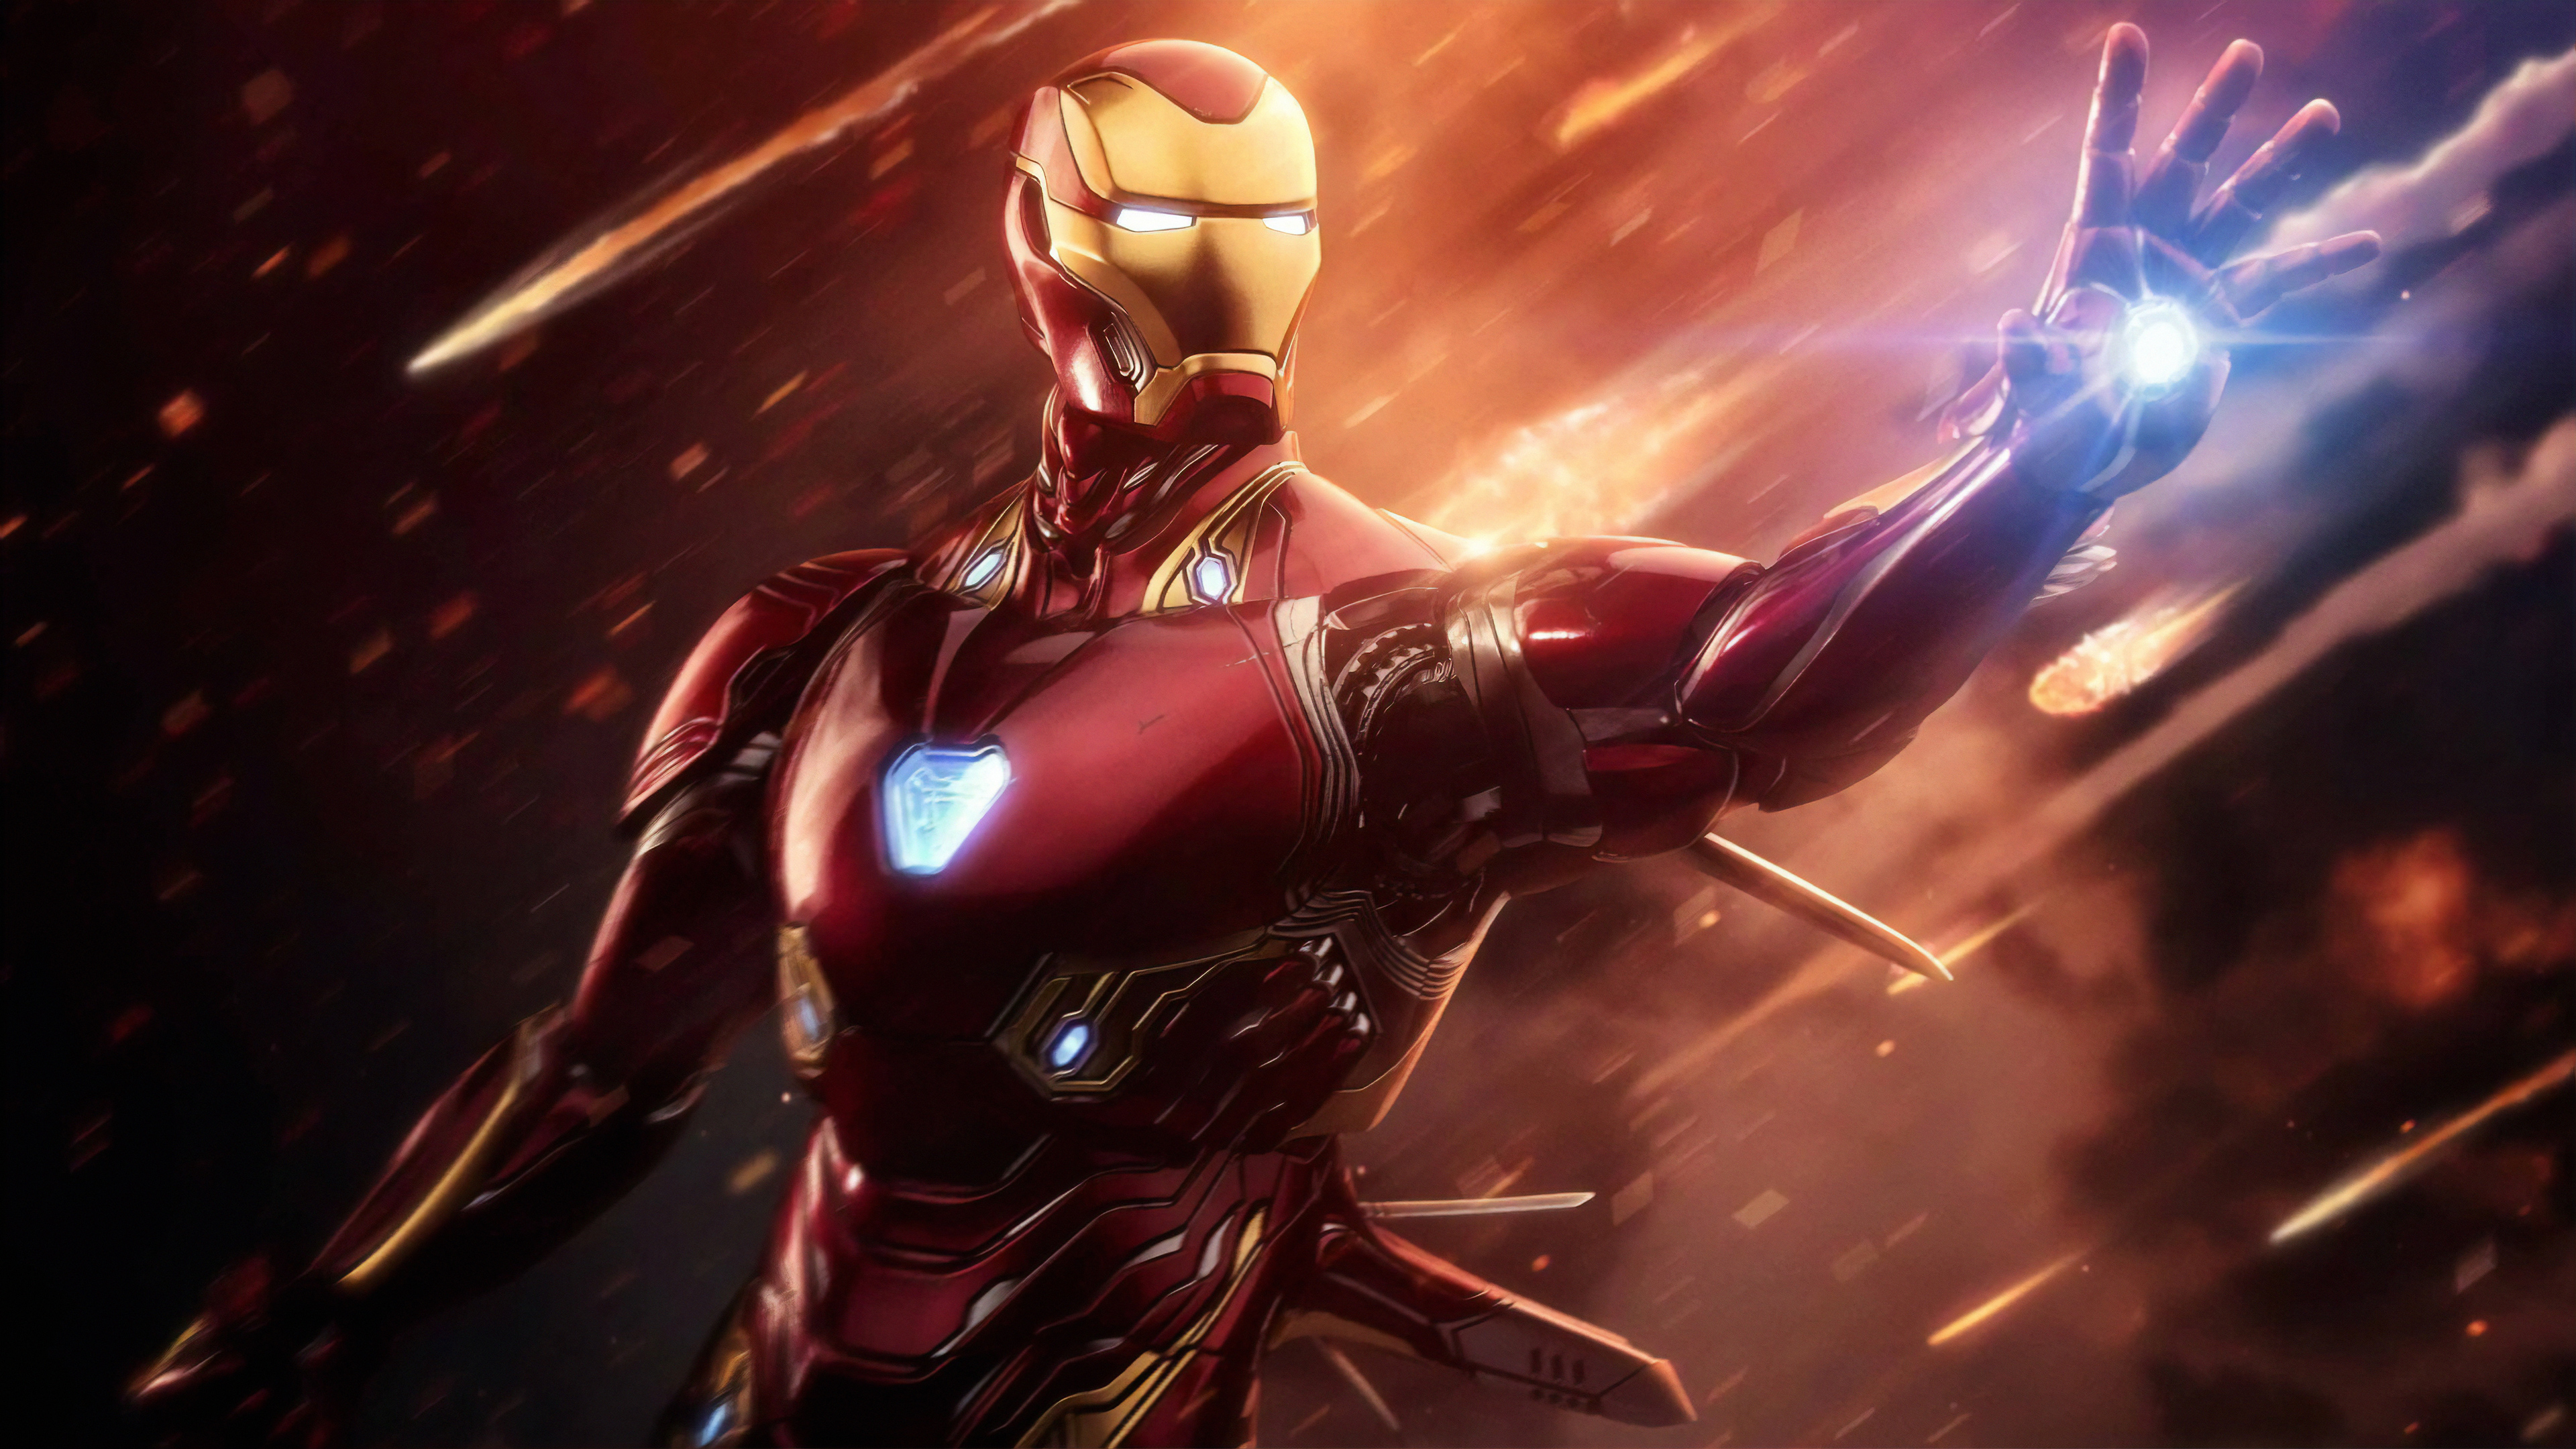 Iron Man Wallpaper 4k For Mobile 2560934 Hd Wallpaper Backgrounds Download